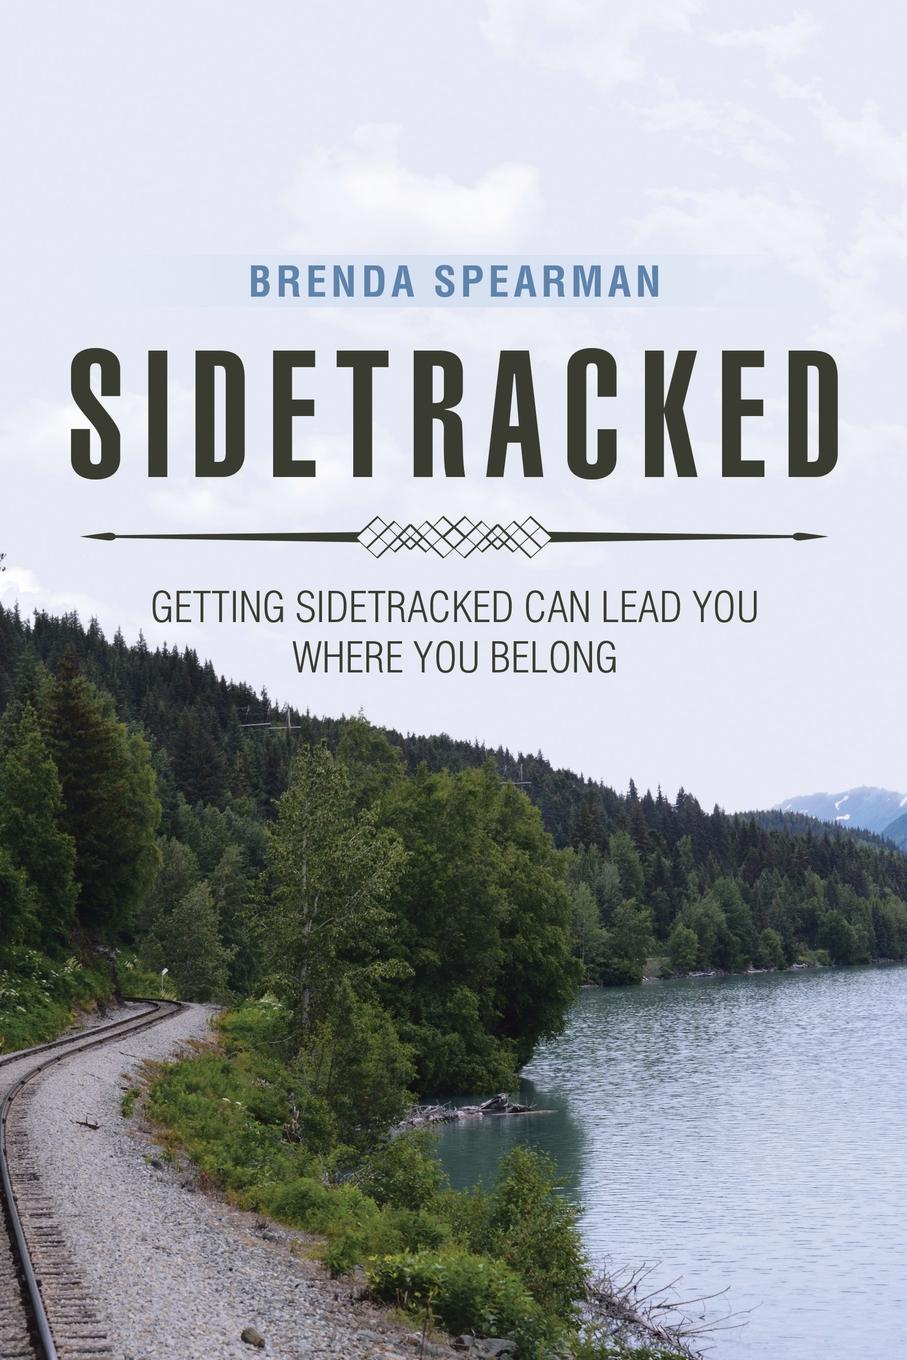 Brenda Spearman Sidetracked. Getting Sidetracked Can Lead You to Where You Belong a place to belong